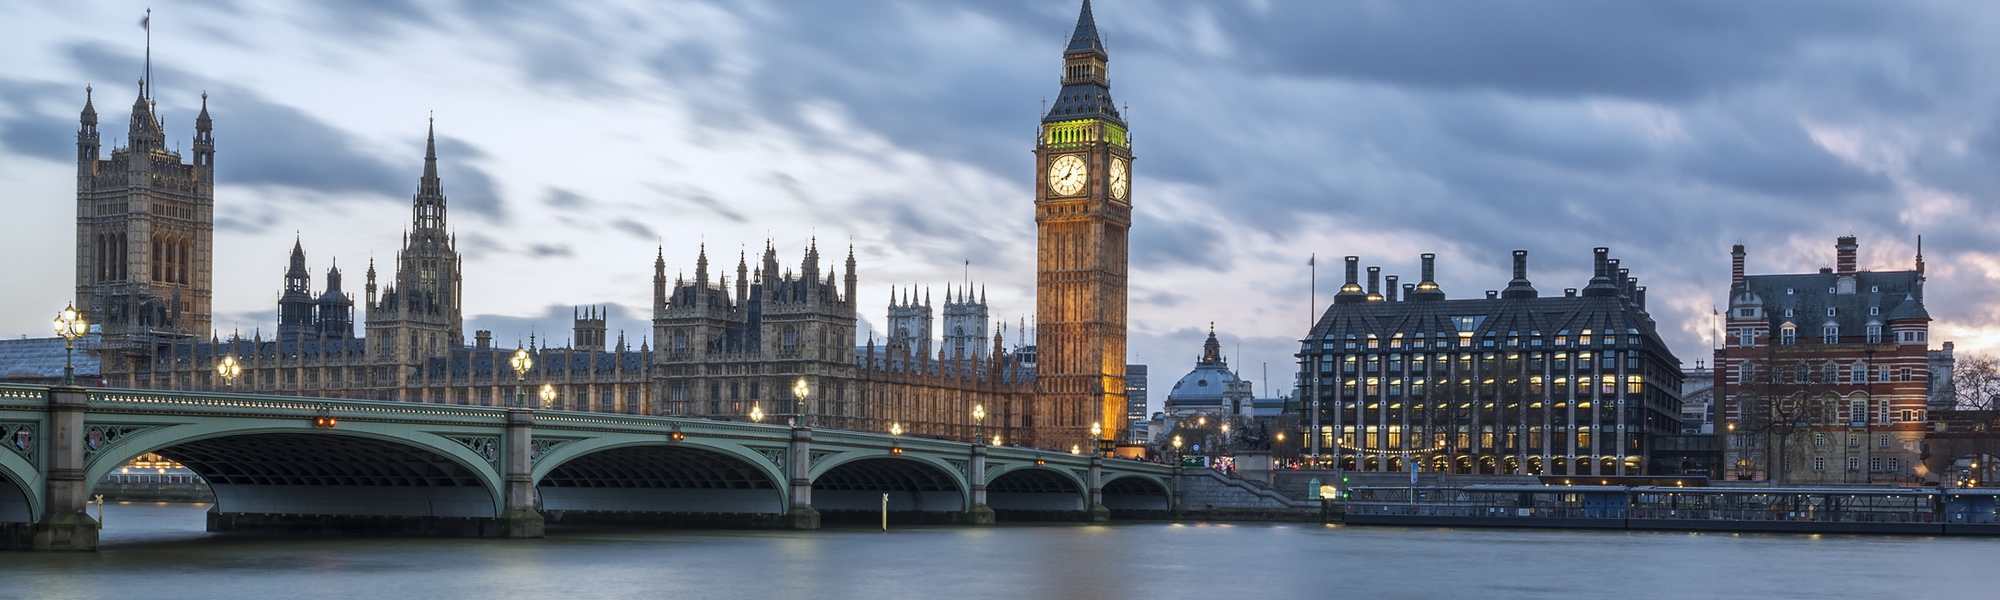 Select Your Dates To Find Available B Hotels Near London Zoo